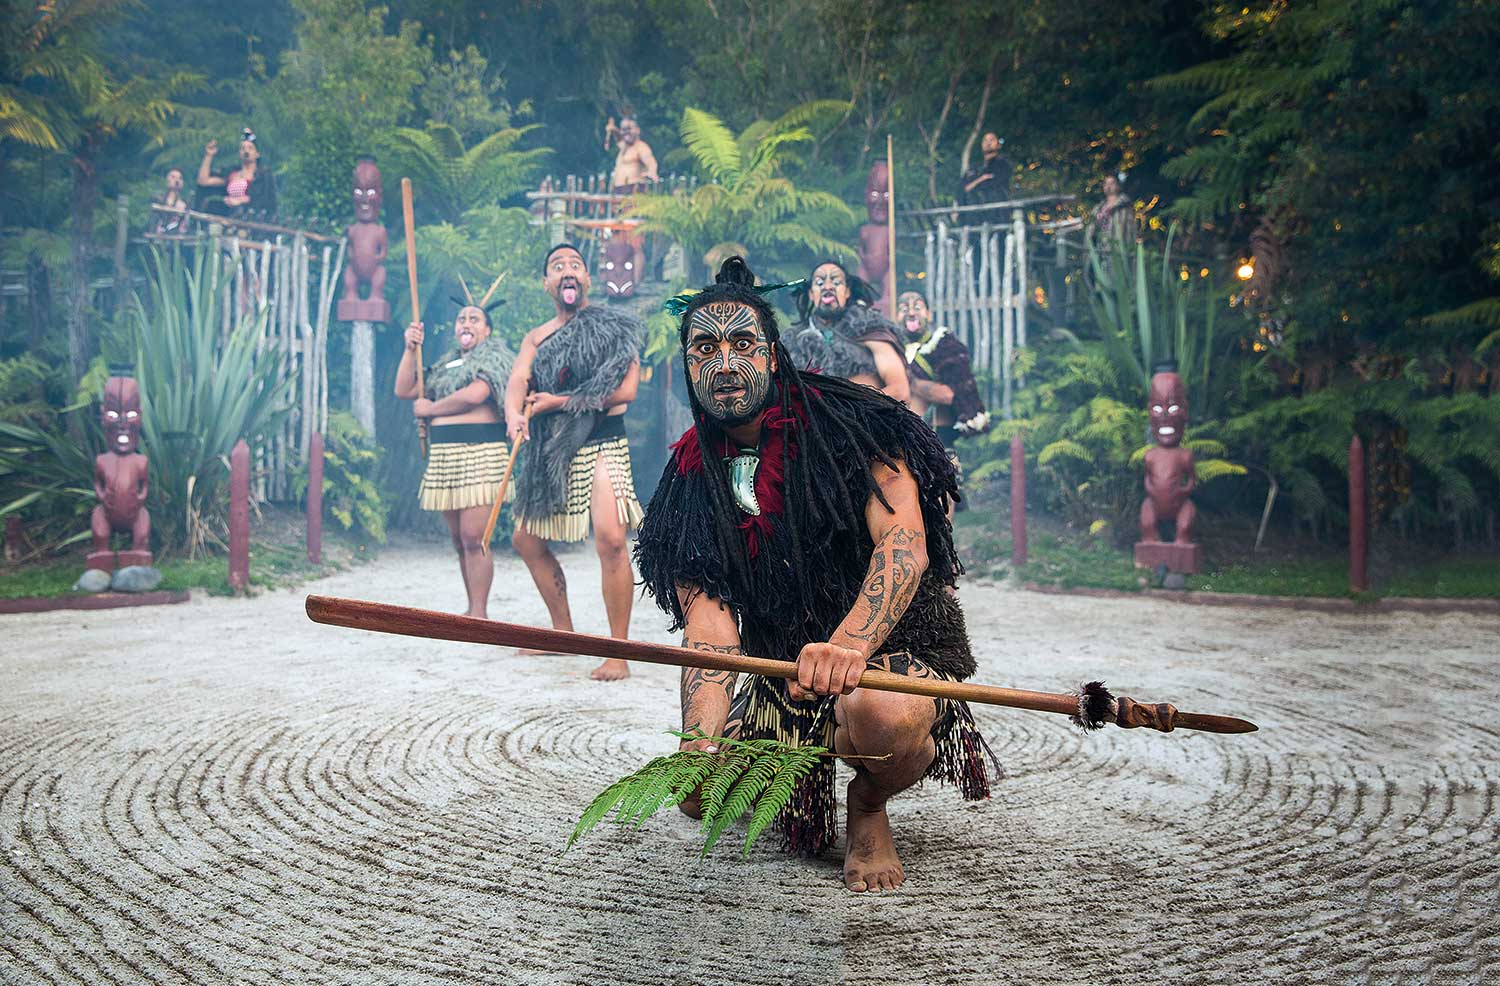 New Zealand Traditions: Five Ways To Observe Māori Culture And Traditions In New